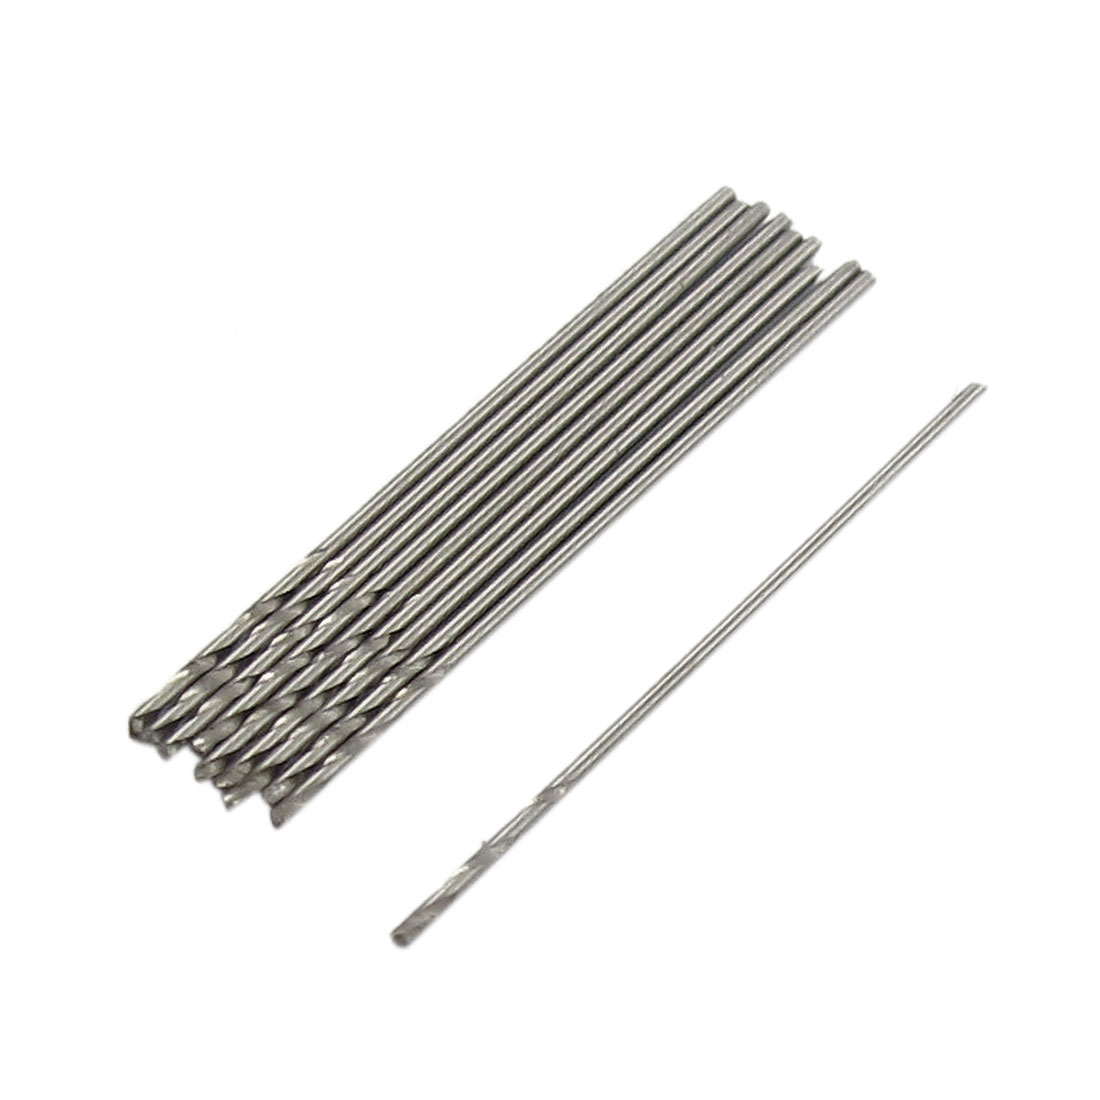 10 Pcs Iron Aluminum Drilling HSS Twist Drill Bits Tool 0.5mm